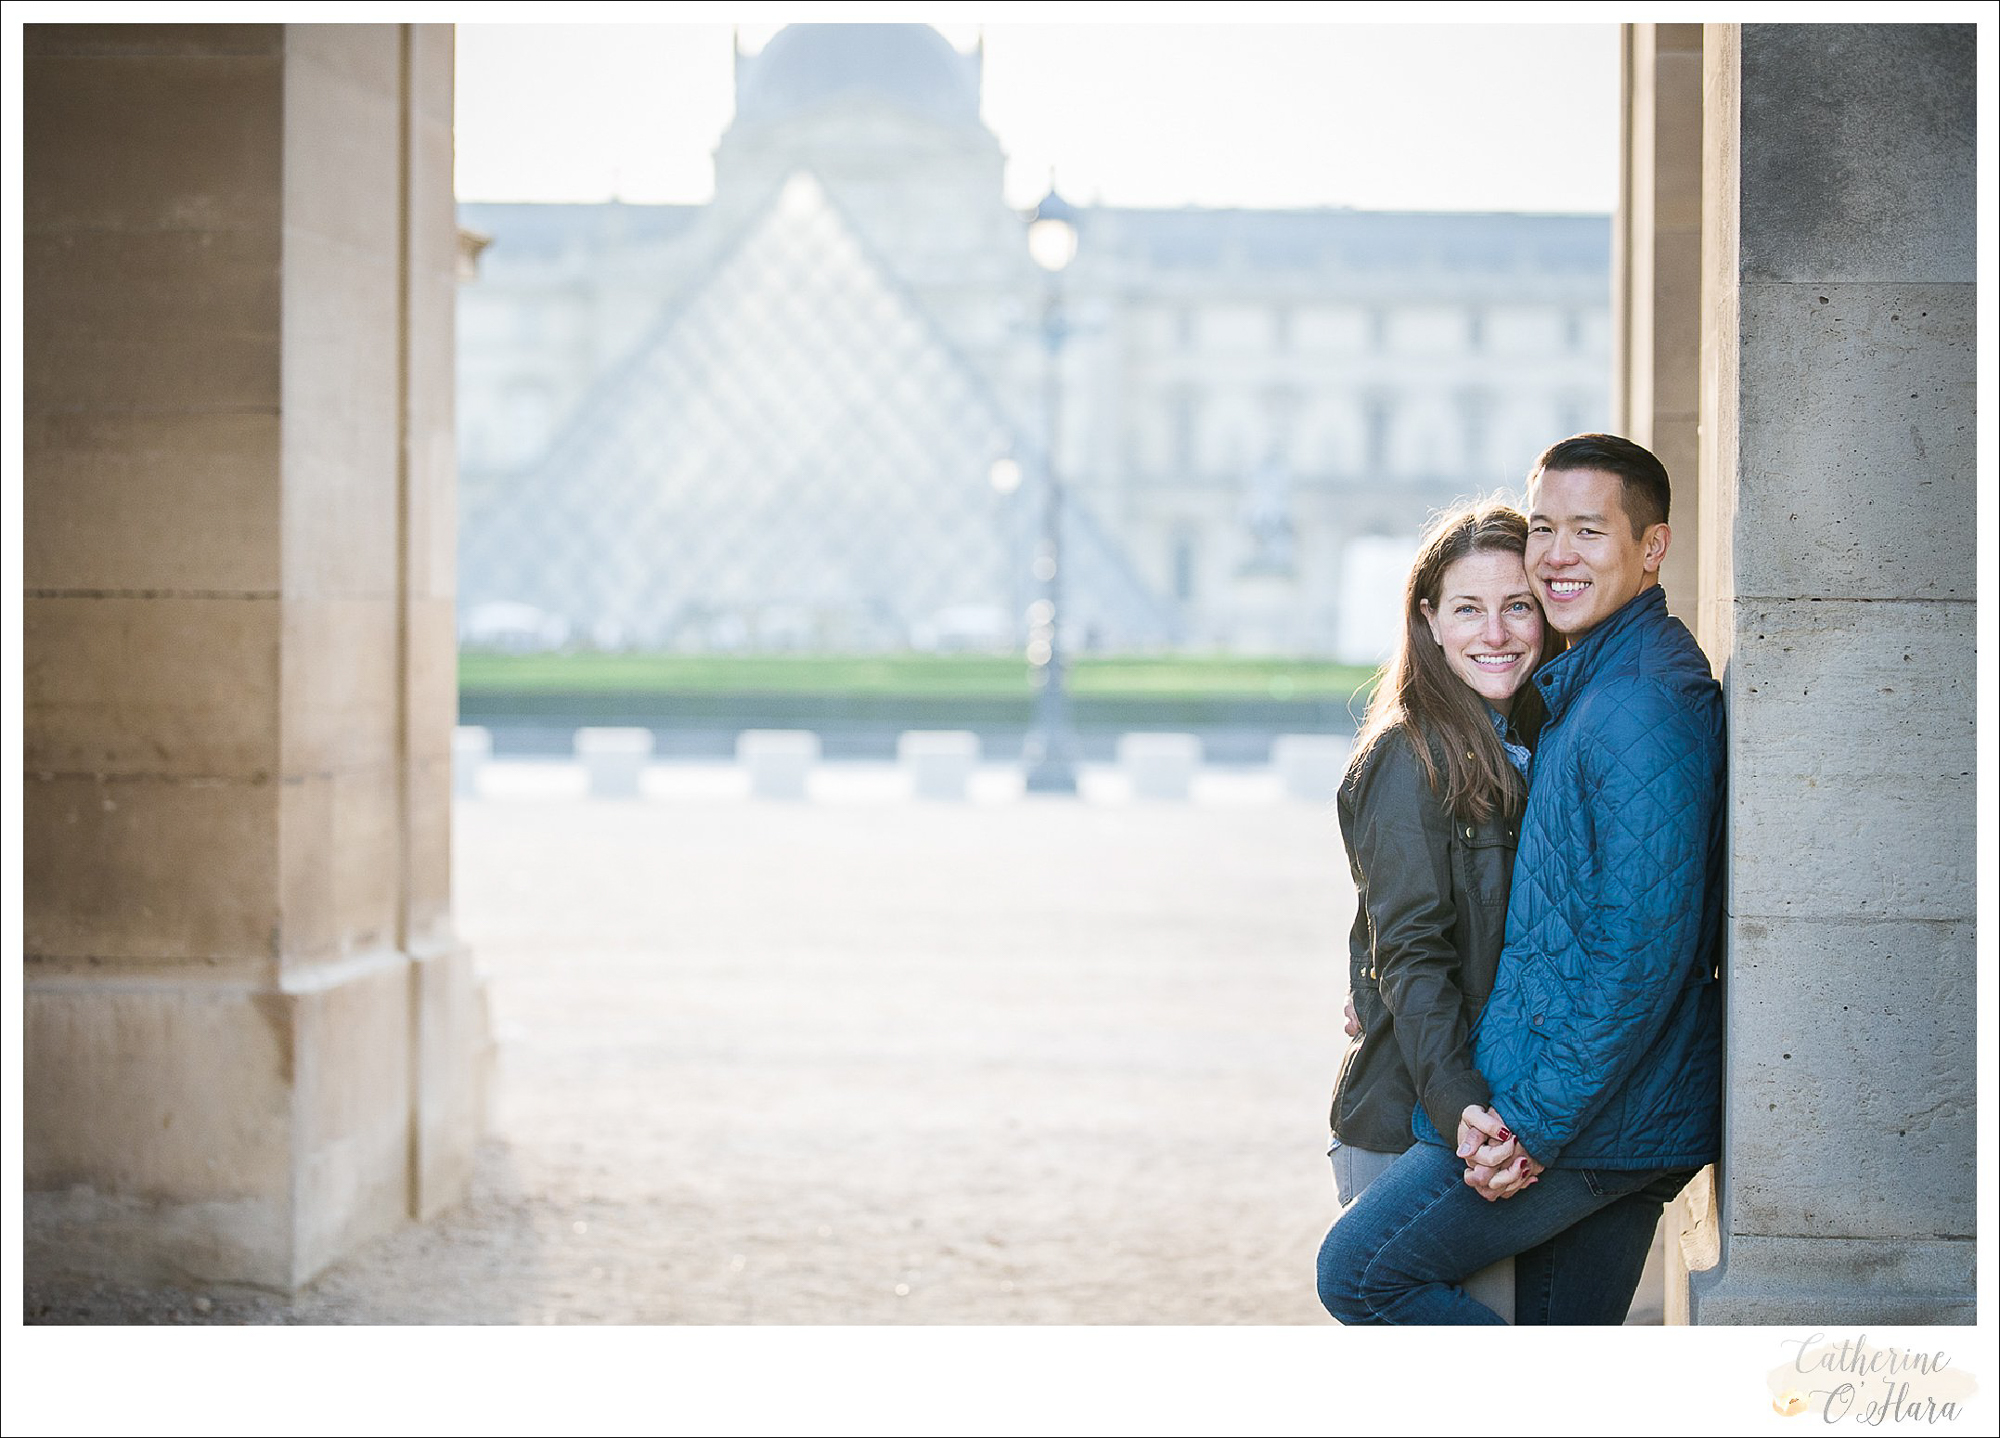 surprise proposal engagement photographer paris france-29.jpg